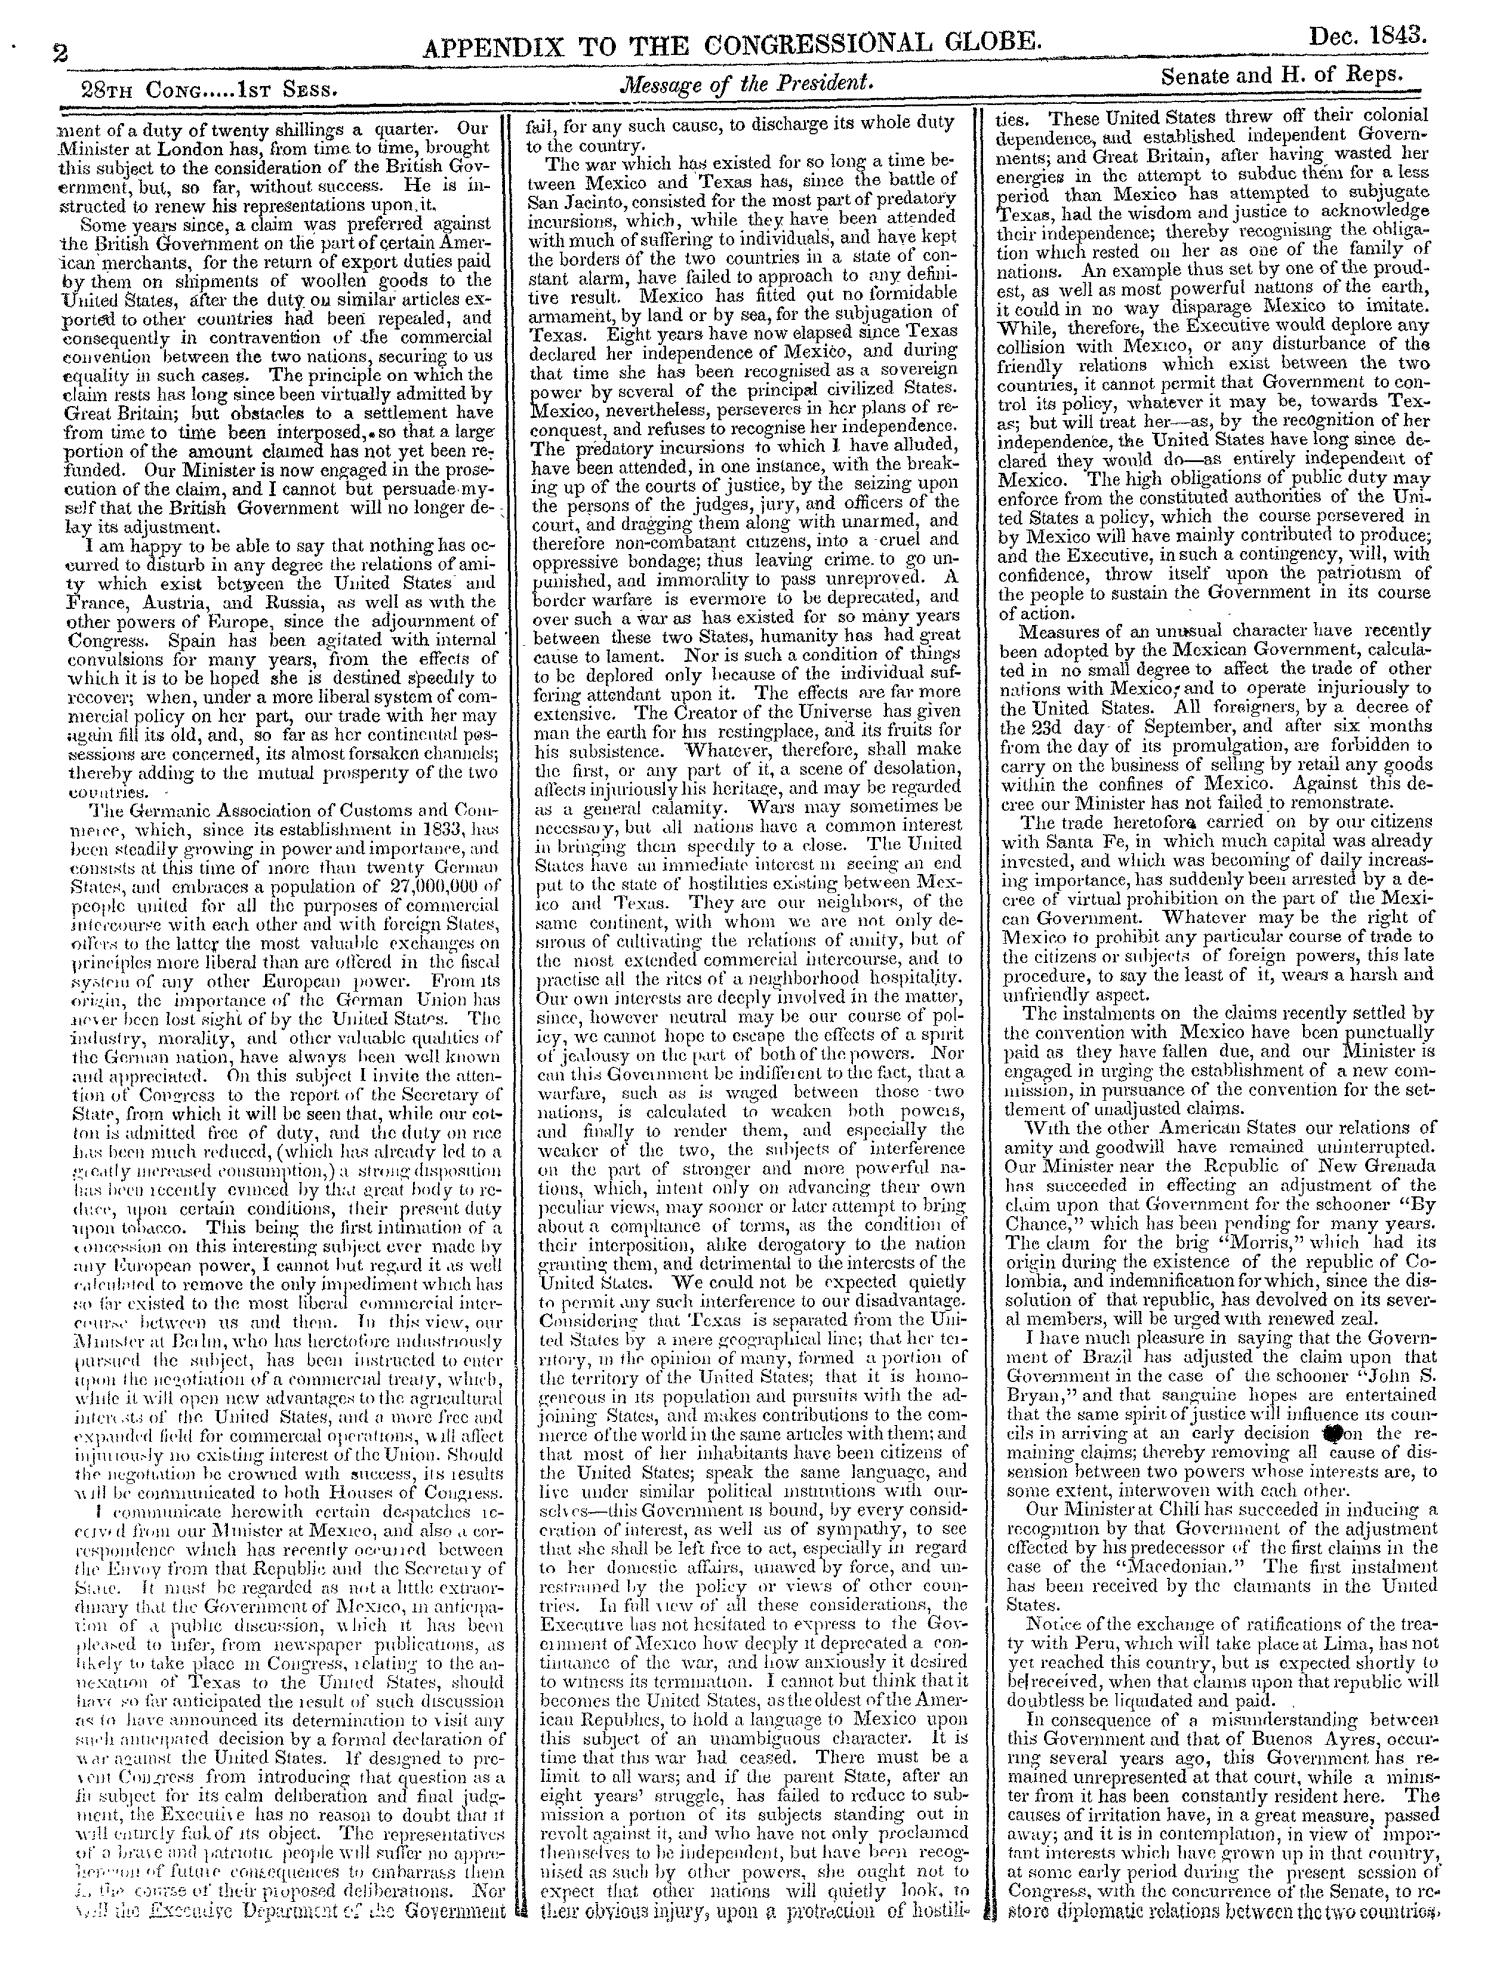 The Congressional Globe, Volume 13, Part 2: Twenty-Eighth Congress, First Session                                                                                                      2